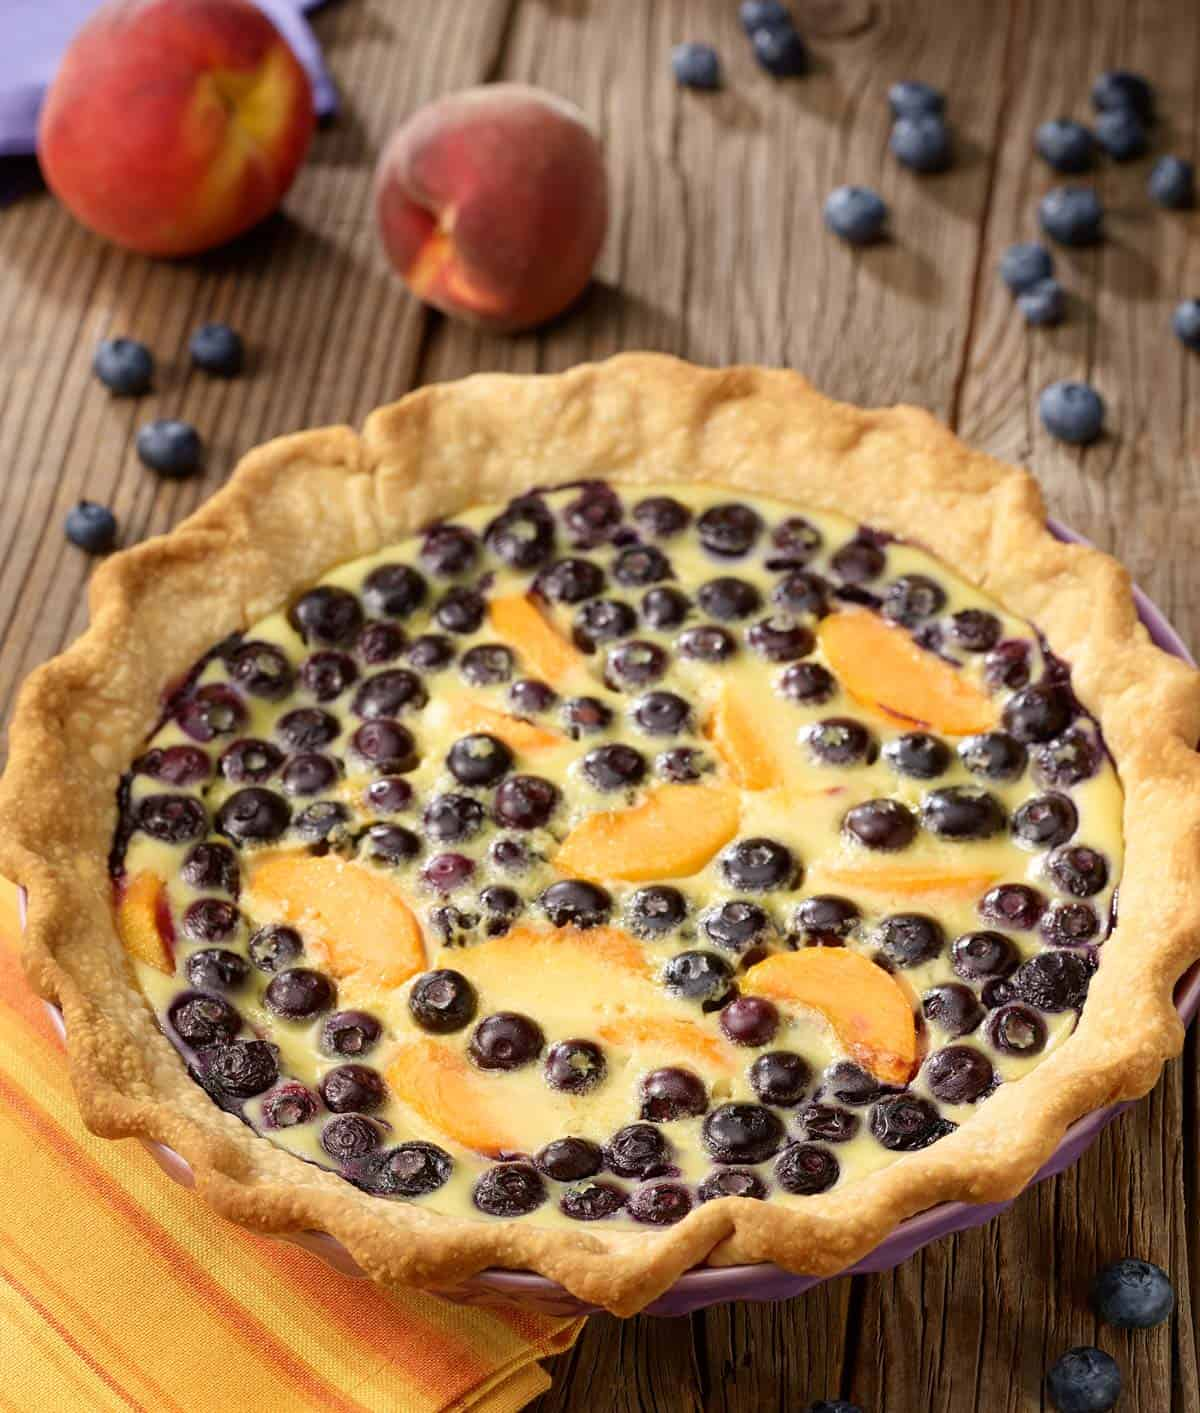 Blueberry peach custard pie with peaches and blueberries on the sdie